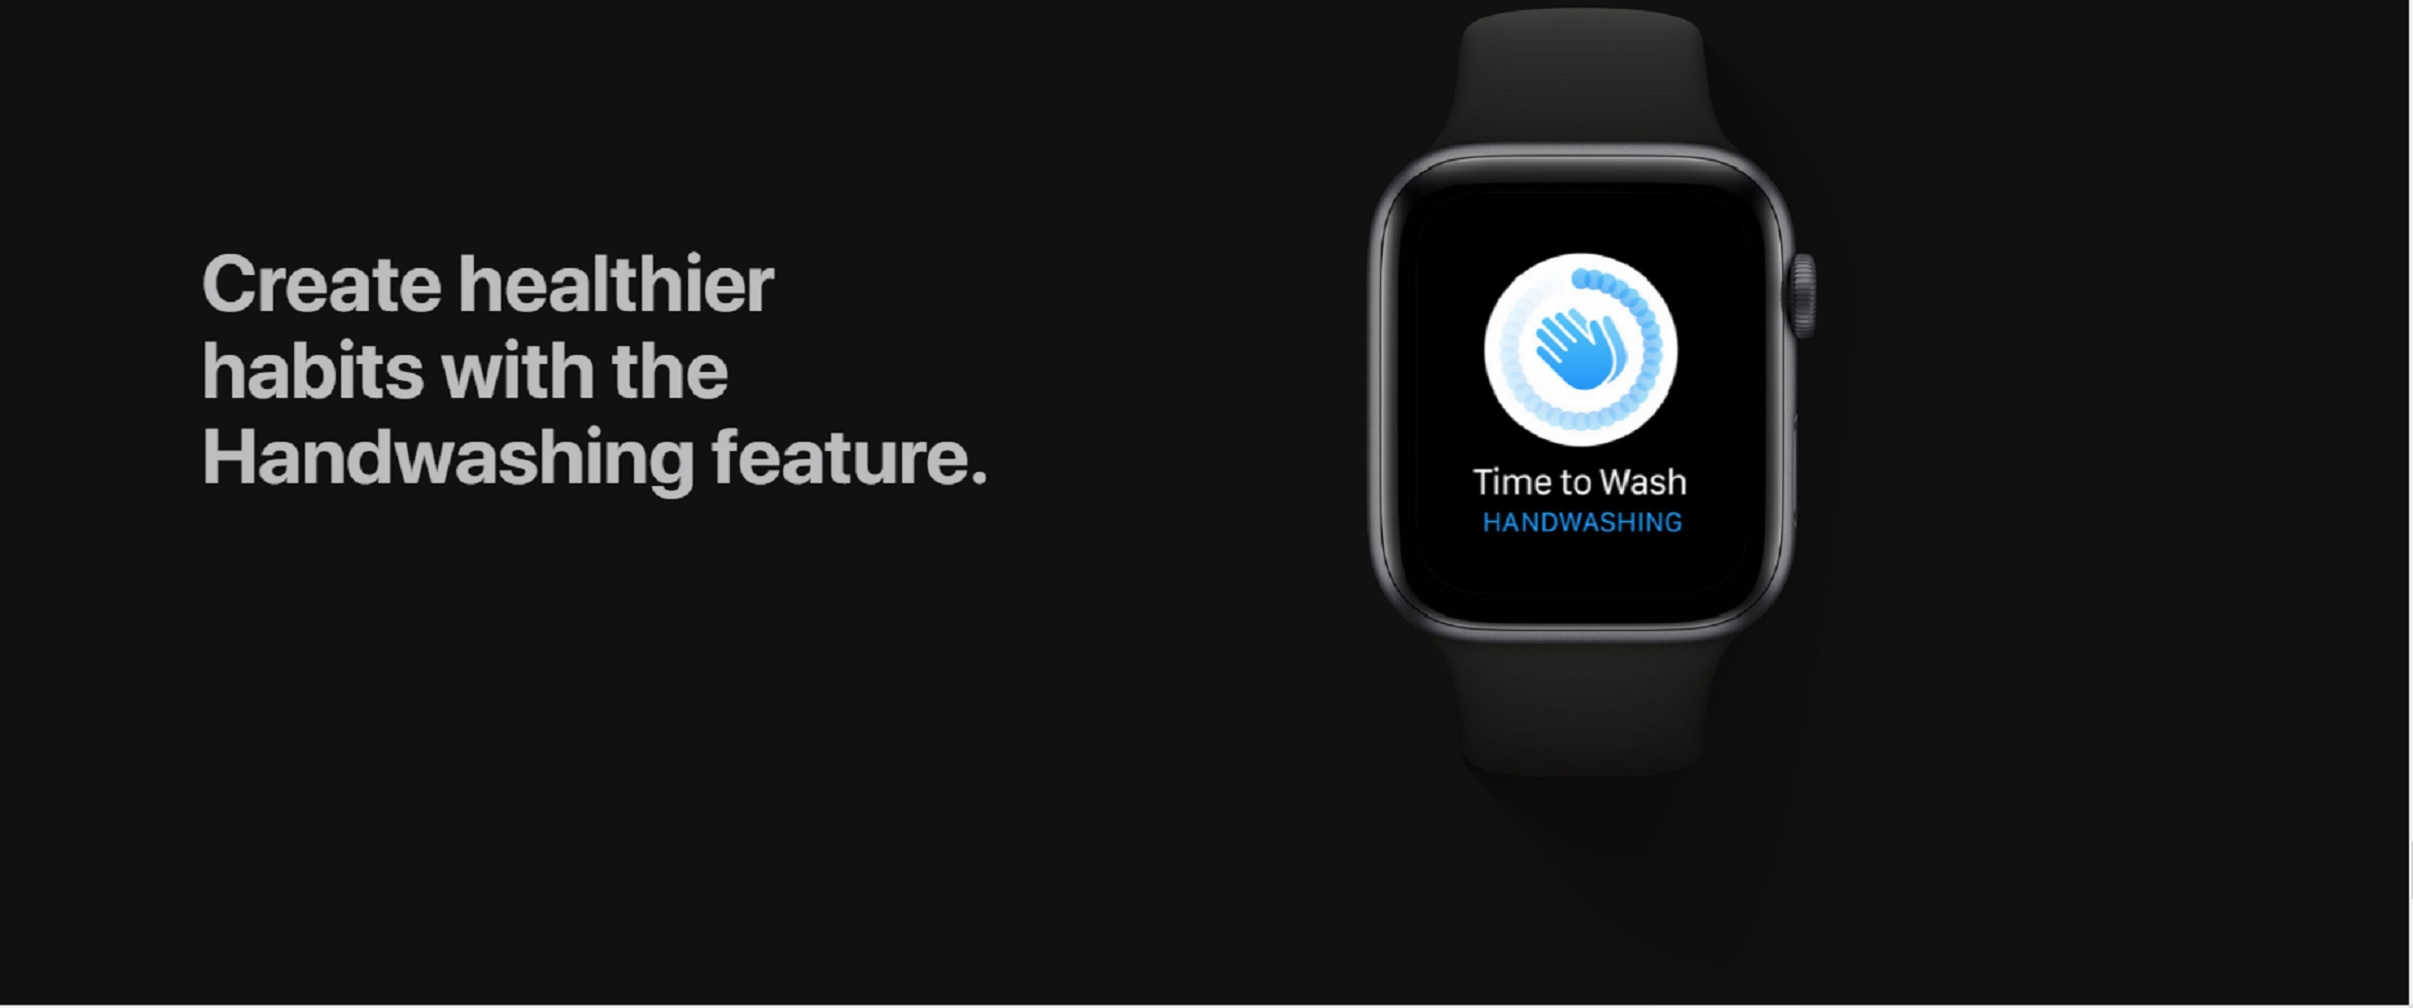 Apple Watch hand washing feature